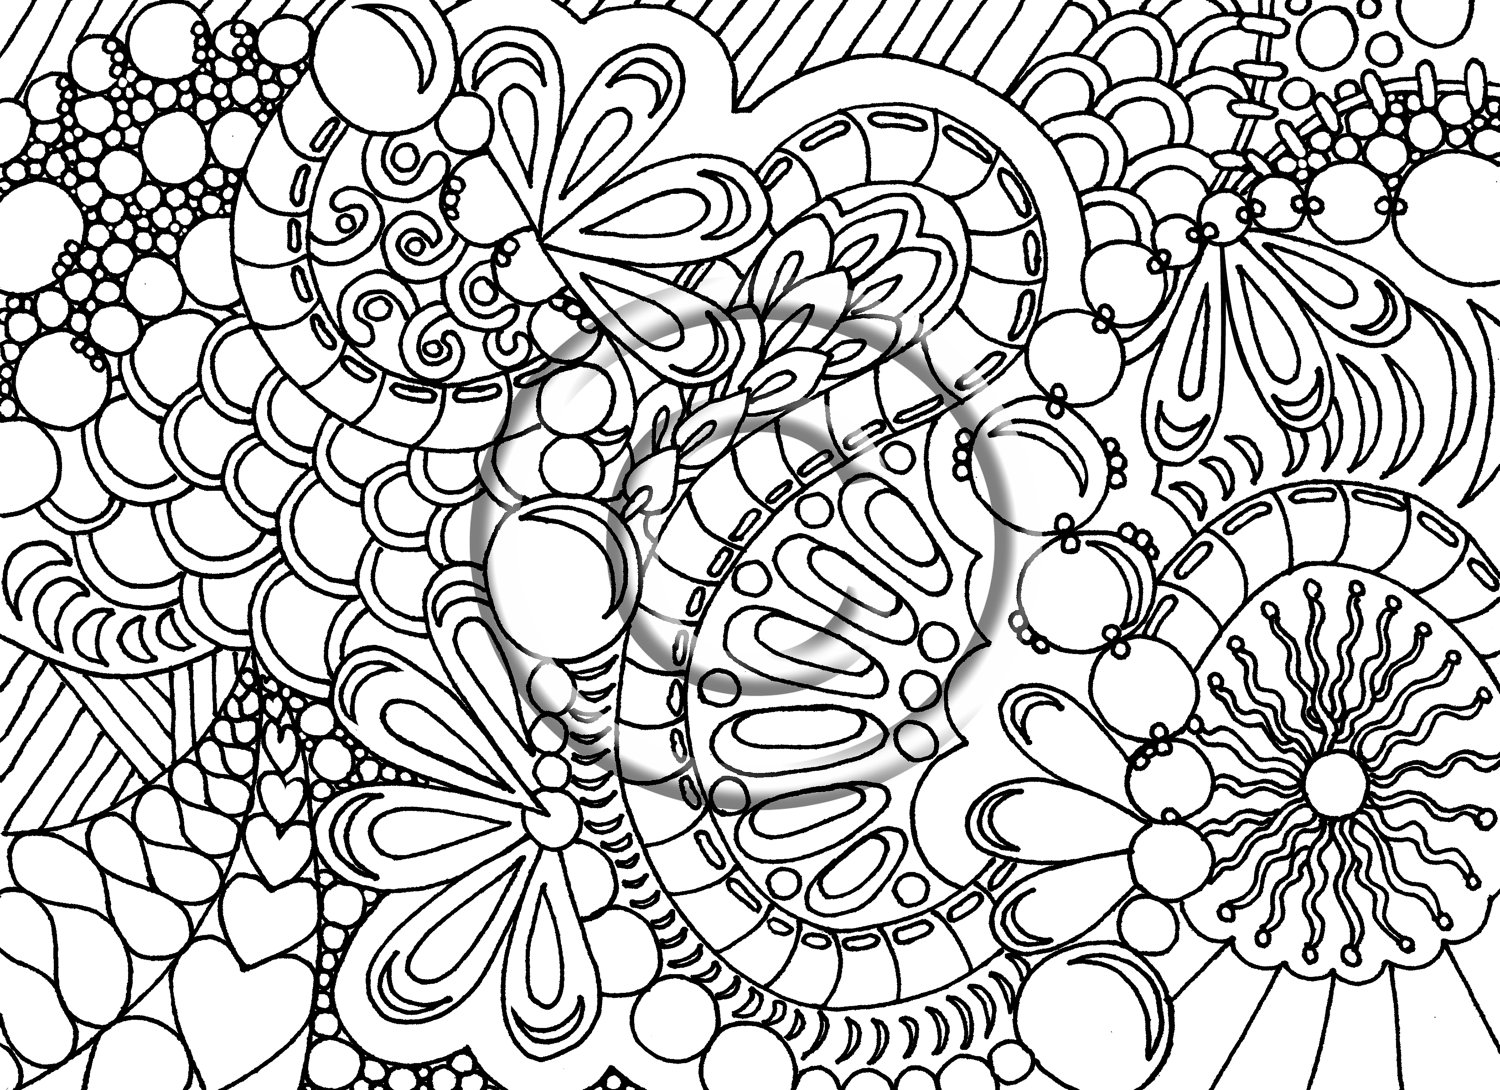 hard coloring pages for adults difficult coloring pages for adults free printable for pages hard coloring adults